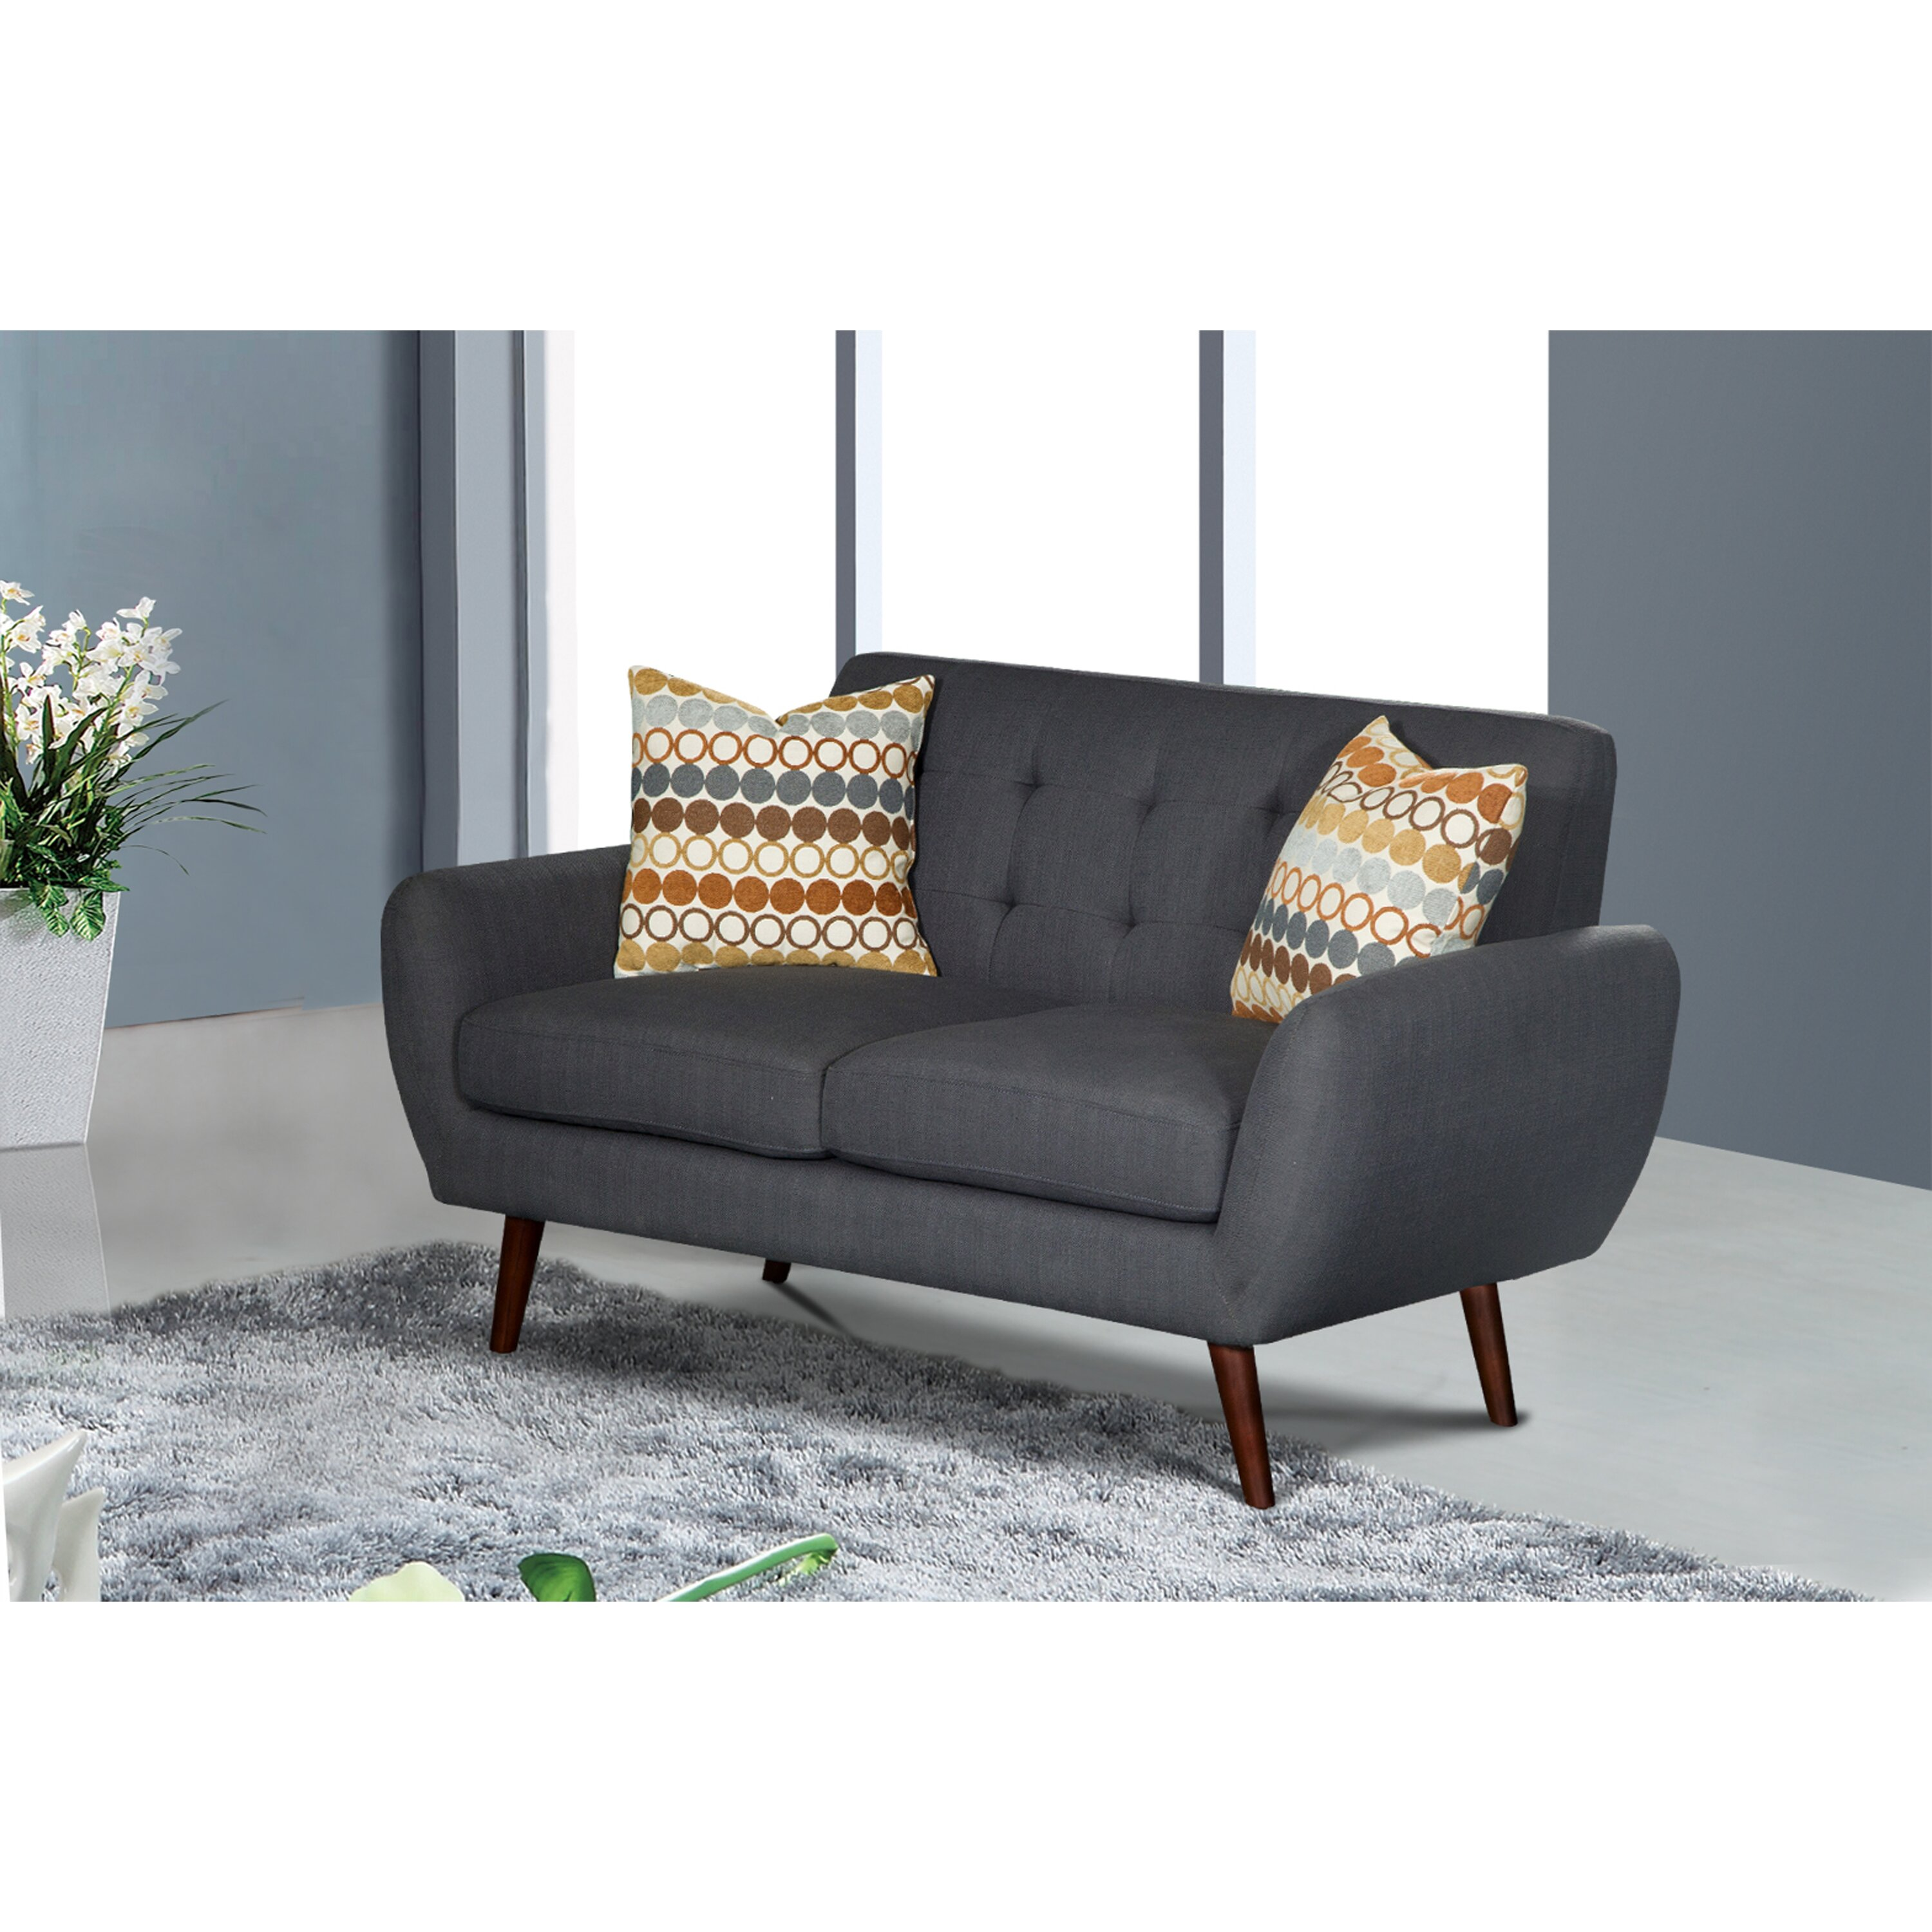 Living in style keira 2 piece living room set wayfair for 2 piece living room set